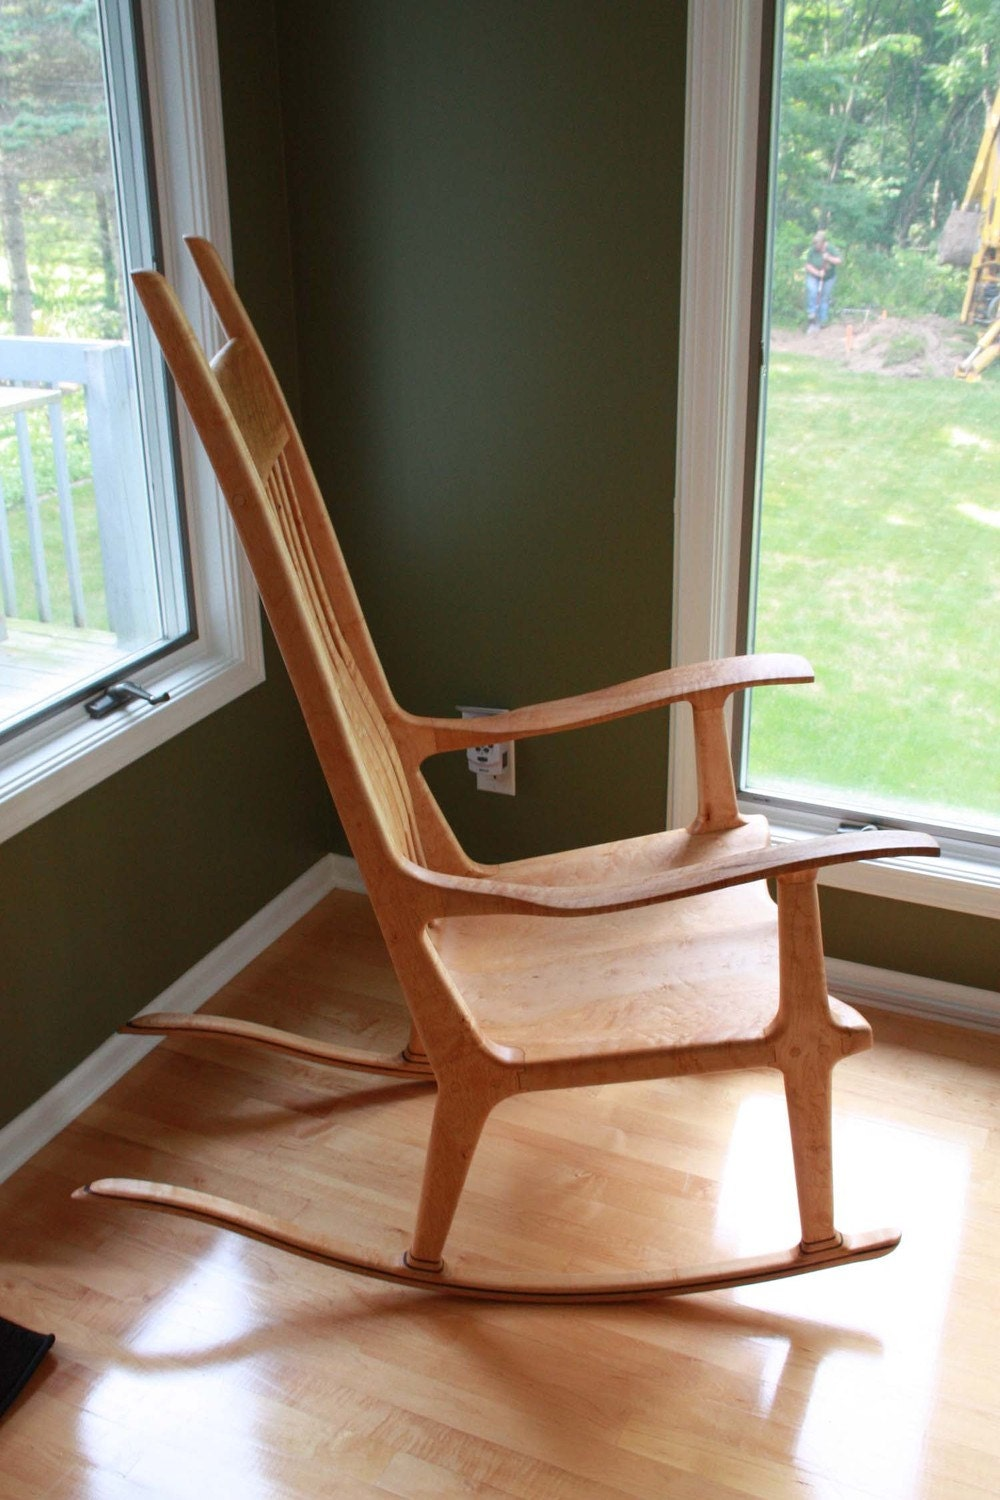 etsy find handcrafted rocking chair would be a family heirloom  - cfratsmanbob's etsy shop